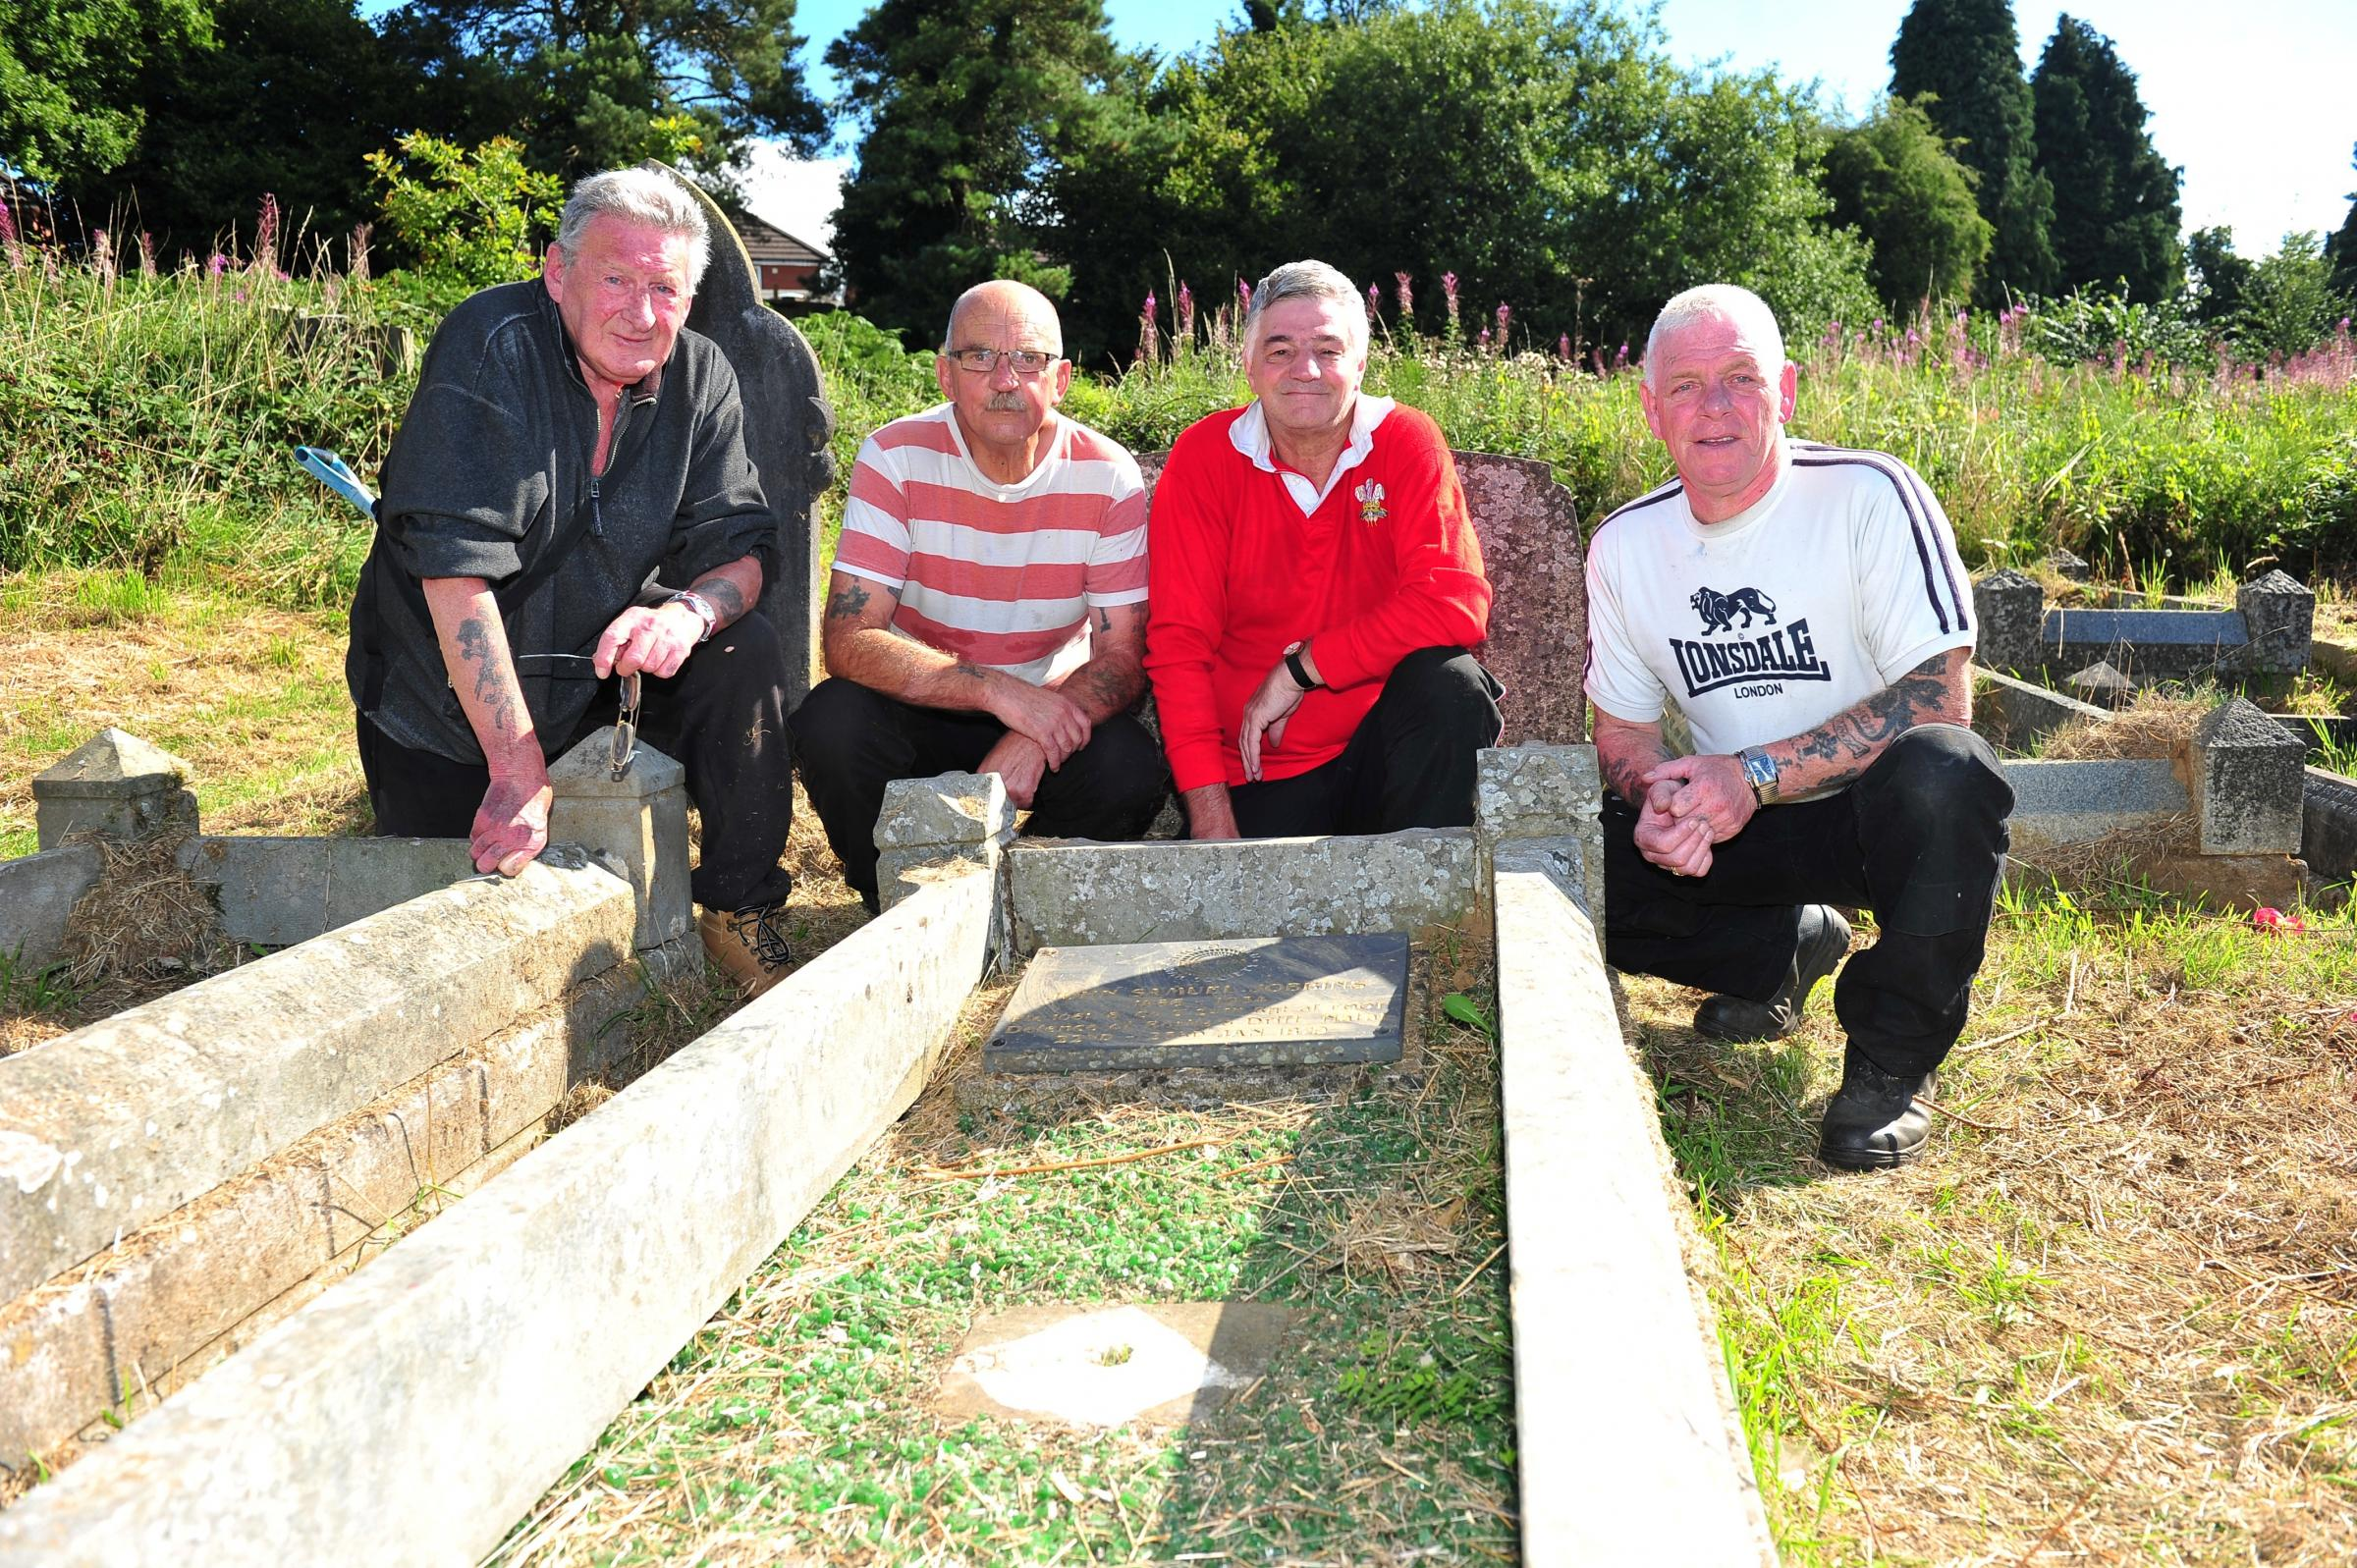 L-R Mike Black, Steve Joy, Nigel Rees and Steve Vaughan at the grave of John Samuel Jobbins (1015200)